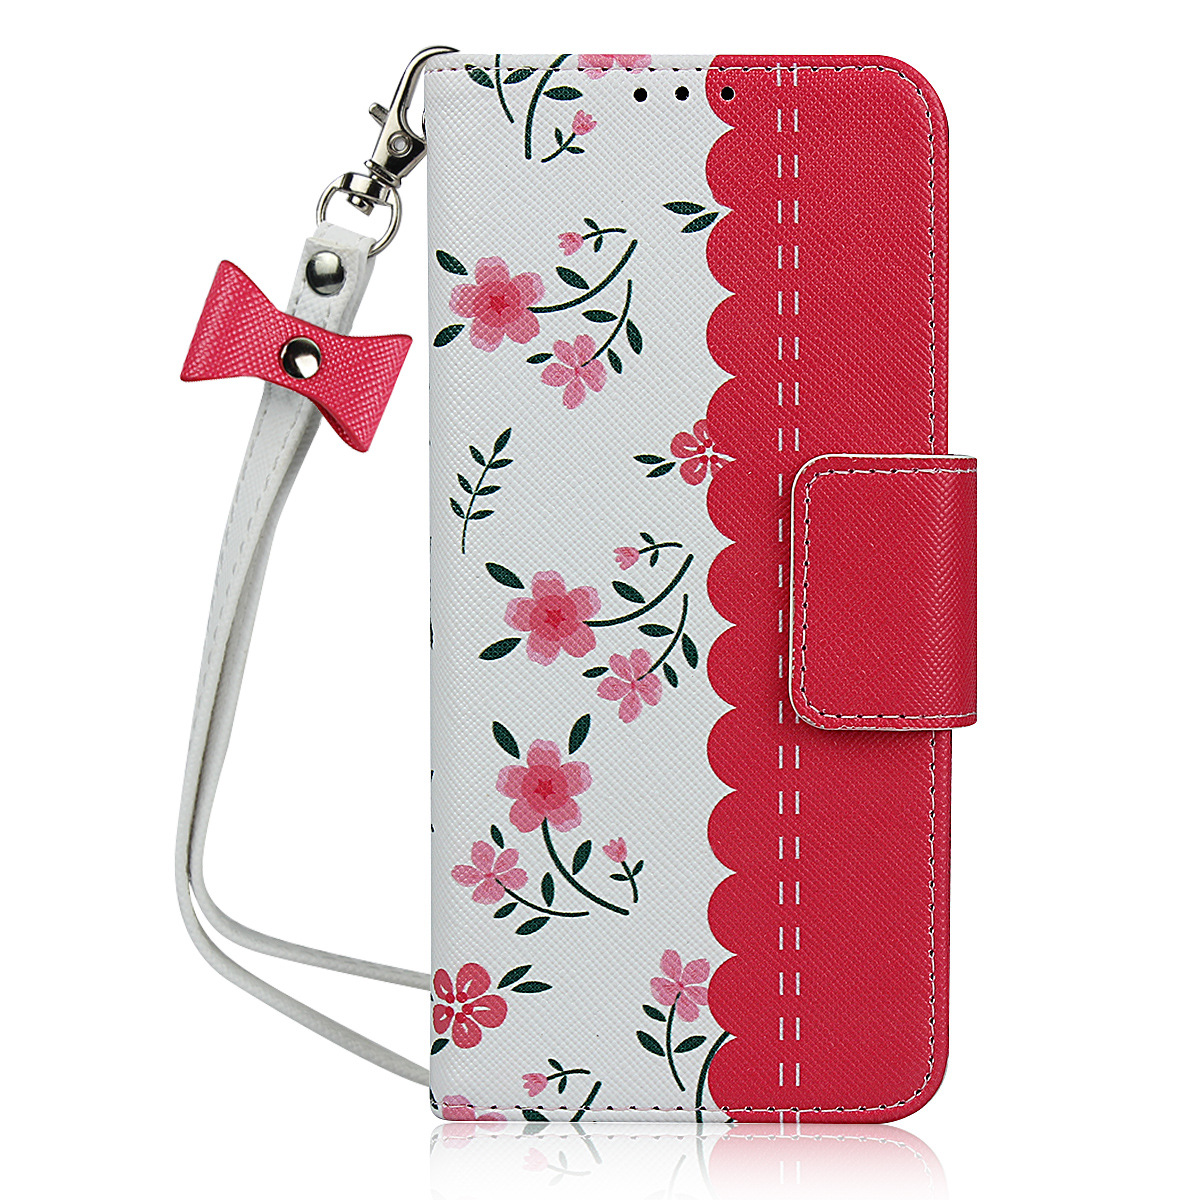 Leather Wallet Phone Case for <font><b>Samsung</b></font> Galaxy S10 S9 S8 Note10 <font><b>A50</b></font> Flower <font><b>Flip</b></font> <font><b>Cover</b></font> popsocket for mobile phones image